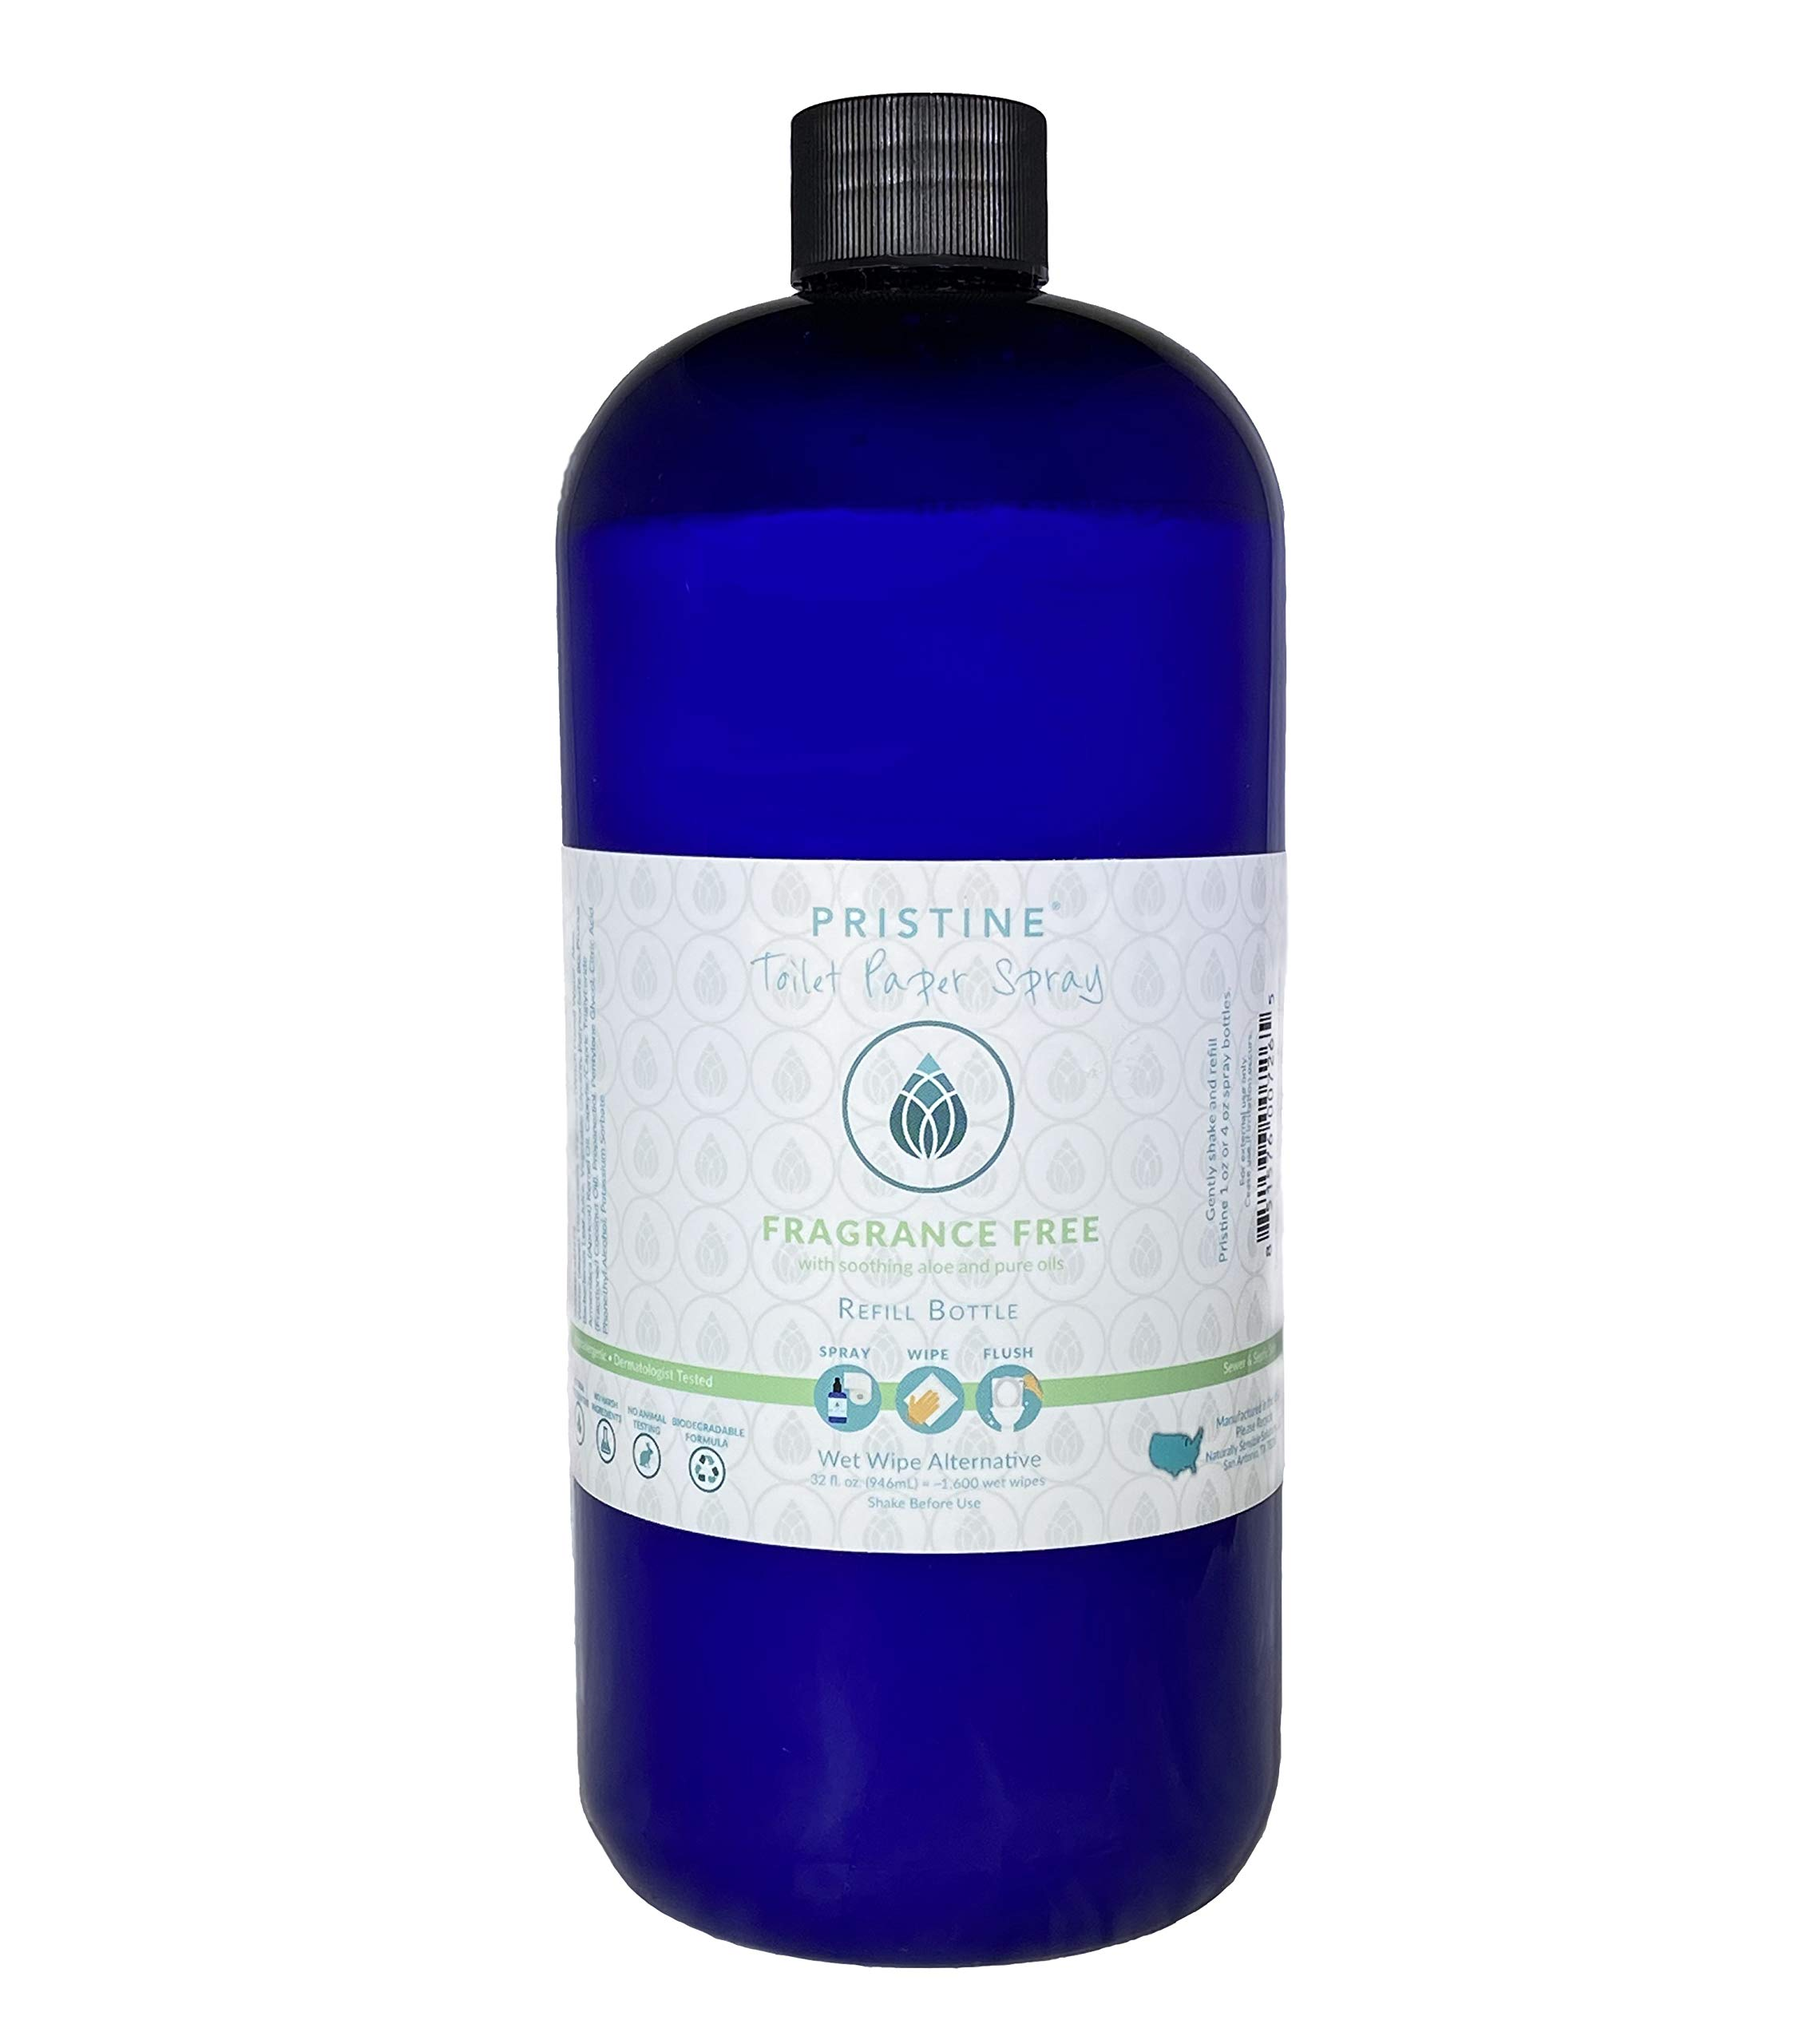 Pristine Toilet Paper Spray | As Seen On Shark Tank: The Planet Friendly, More Natural Alternative to Flushable Wet Wipes - Unscented 32 oz